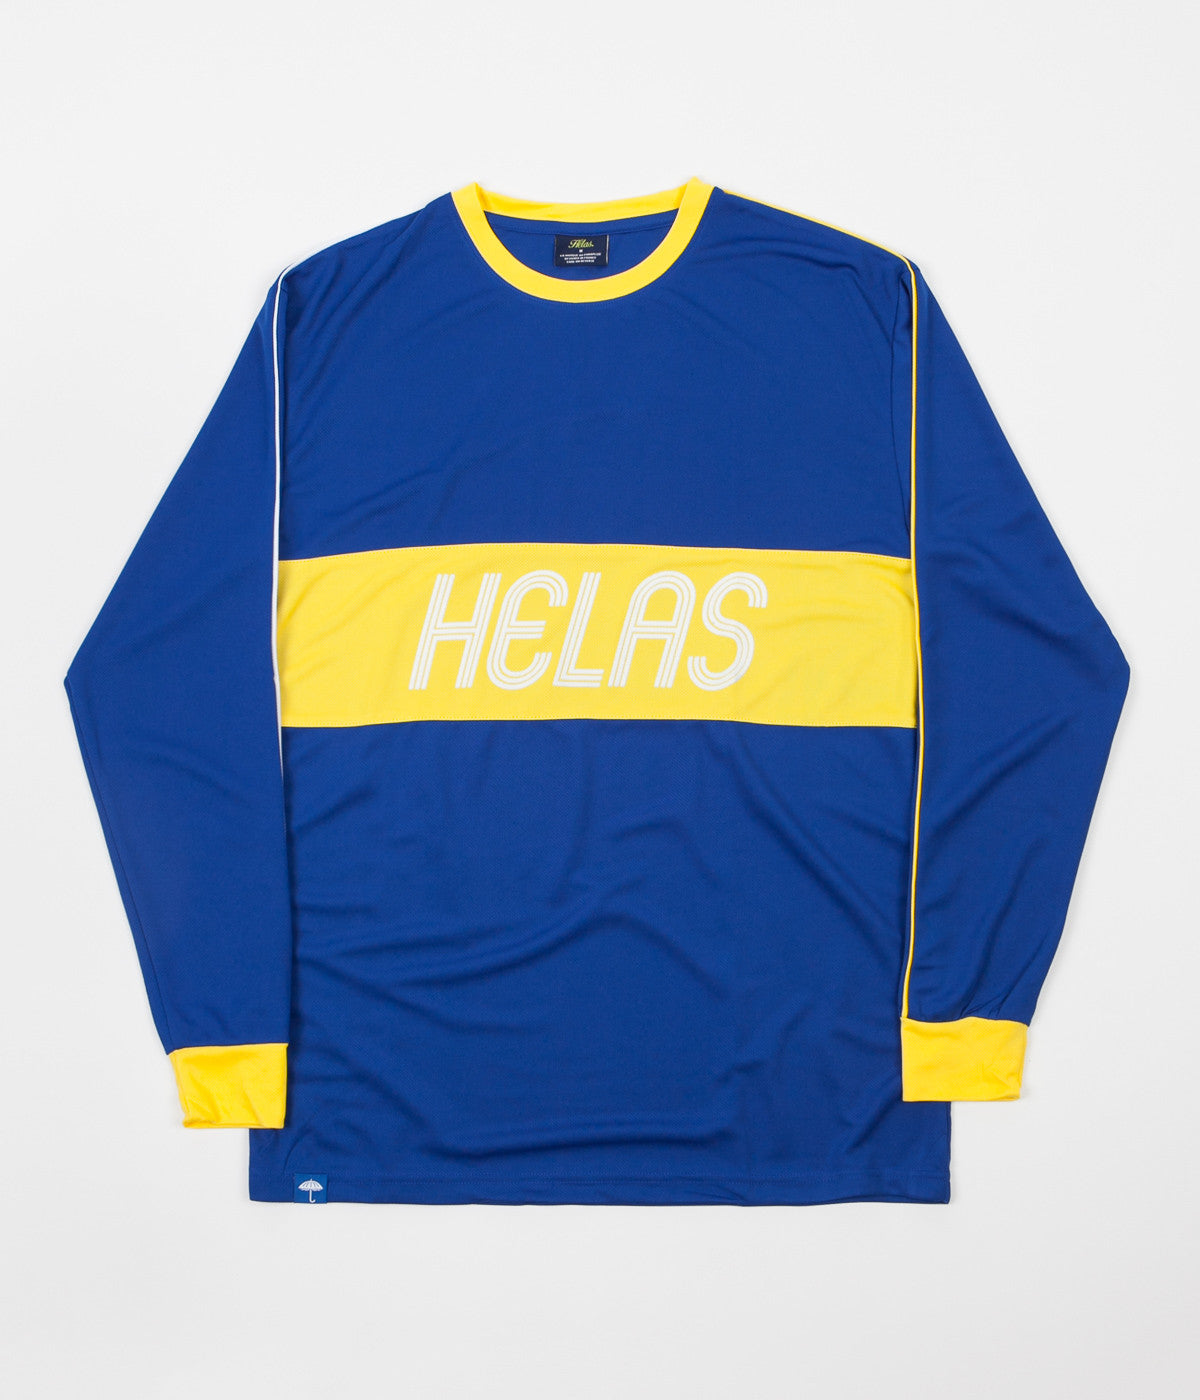 Helas Diego Long Sleeve T-Shirt - Blue